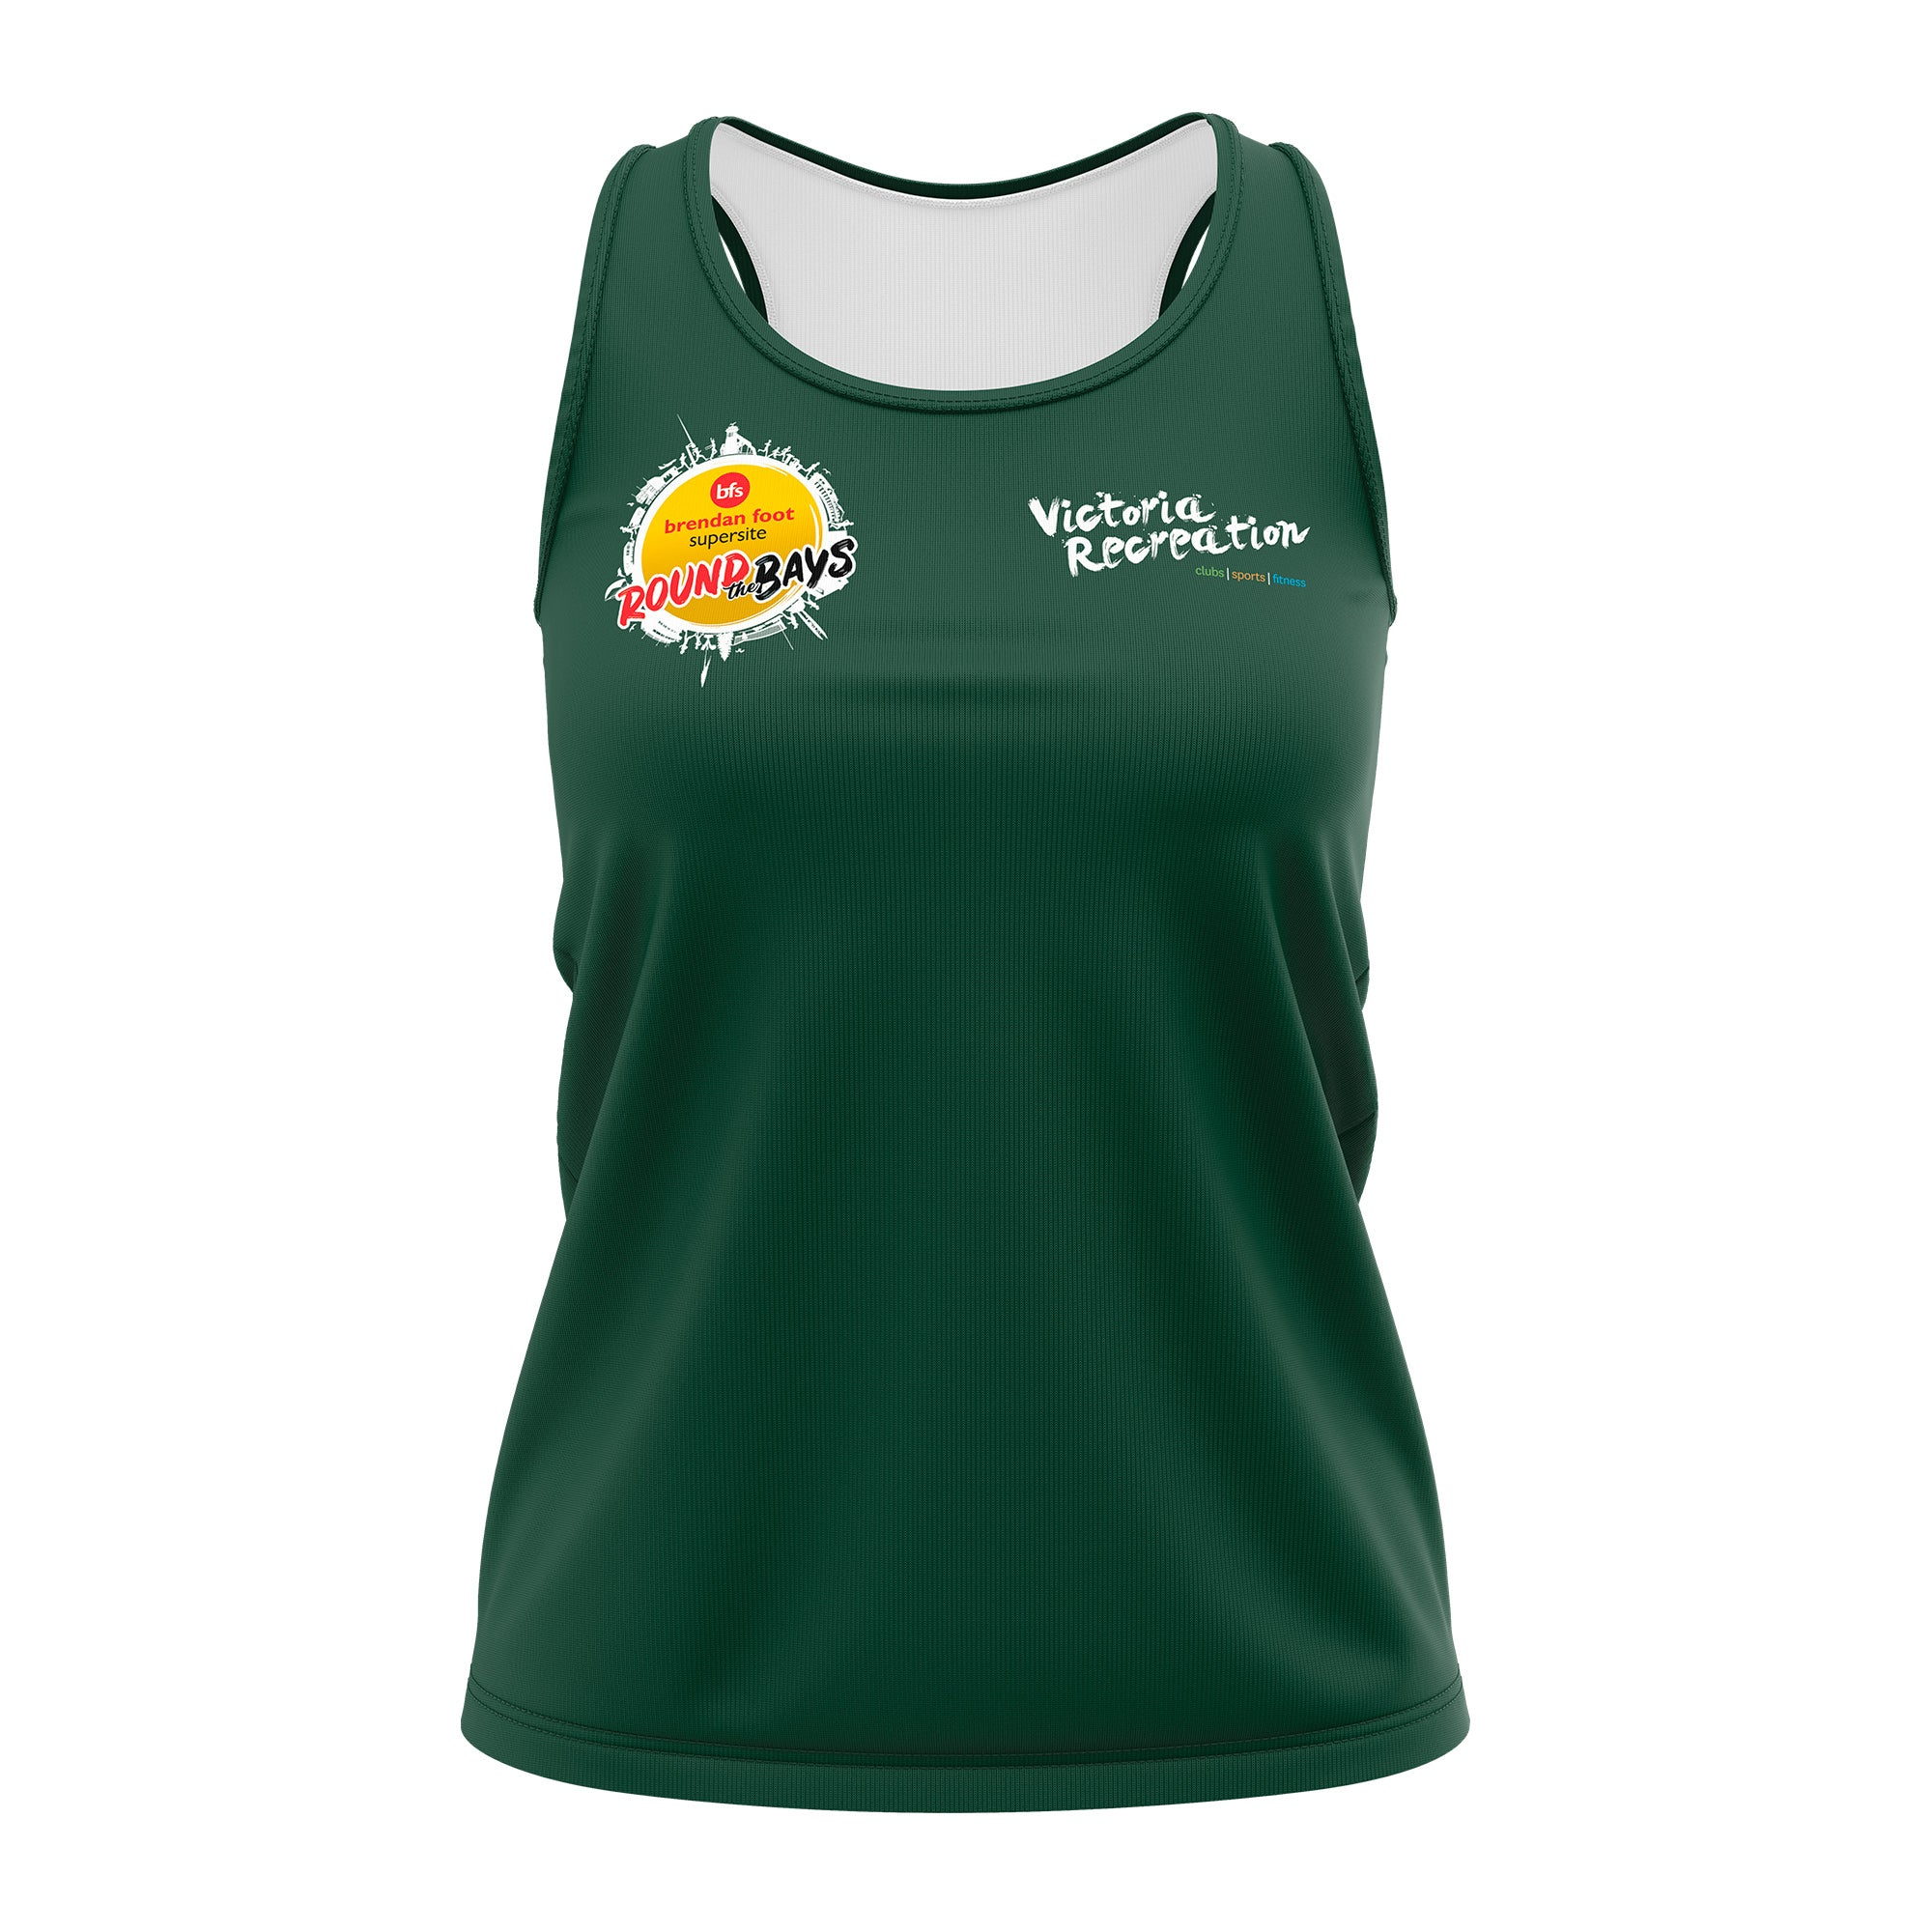 Victoria Recreation - Round the Bays Womens Singlet